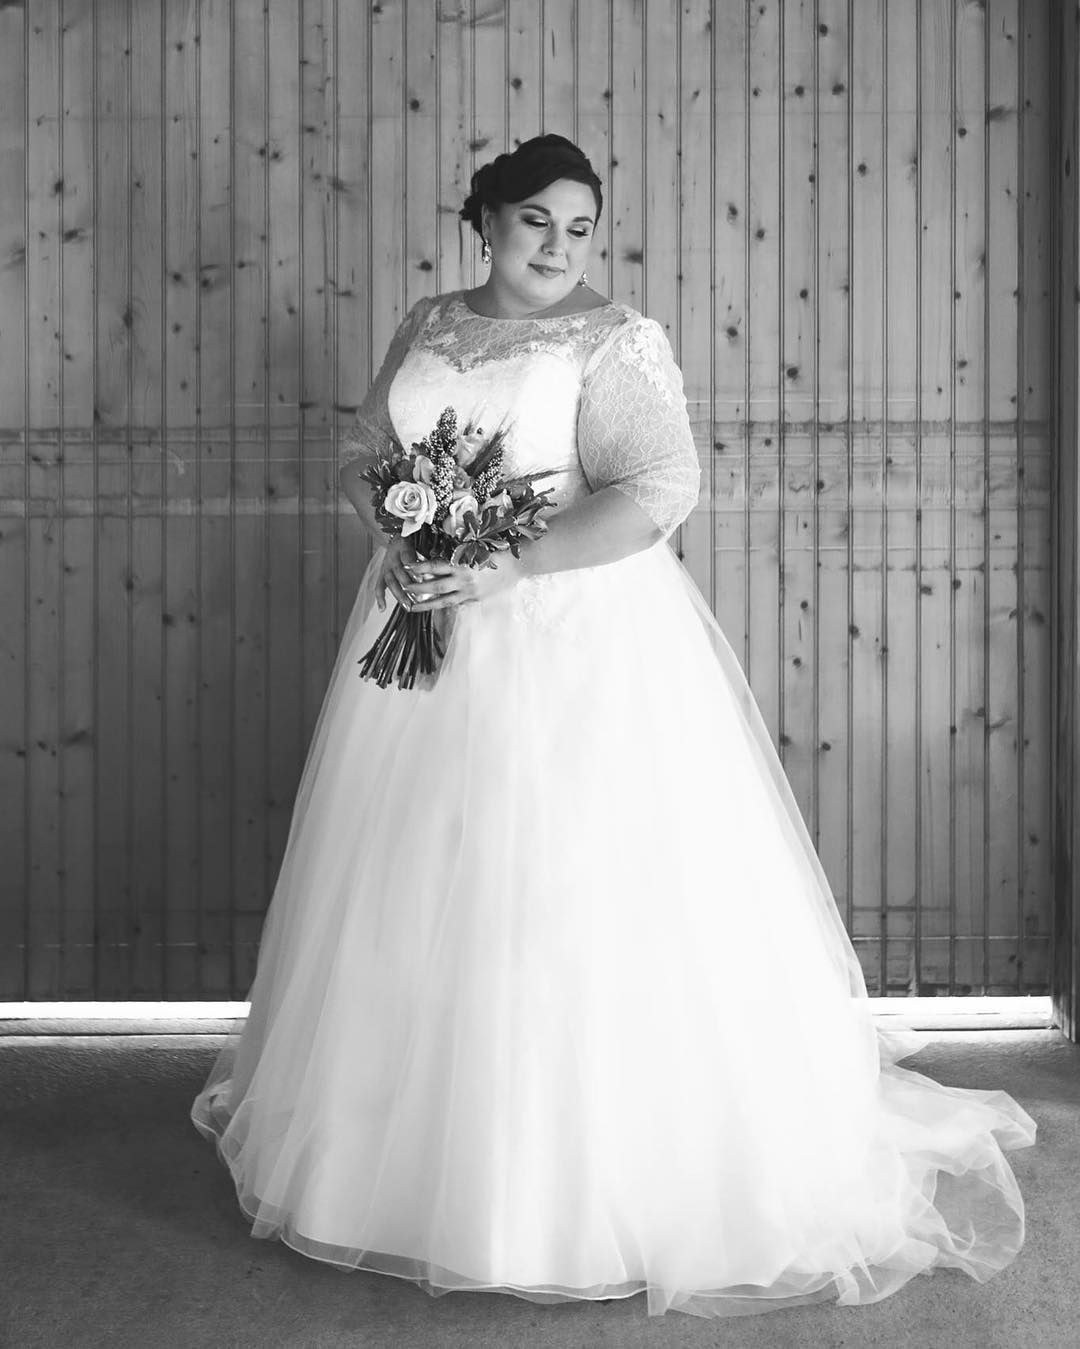 Wedding Gowns For Full Figured Brides: Custom Plus Size Wedding Gowns For Fuller Figured Women In